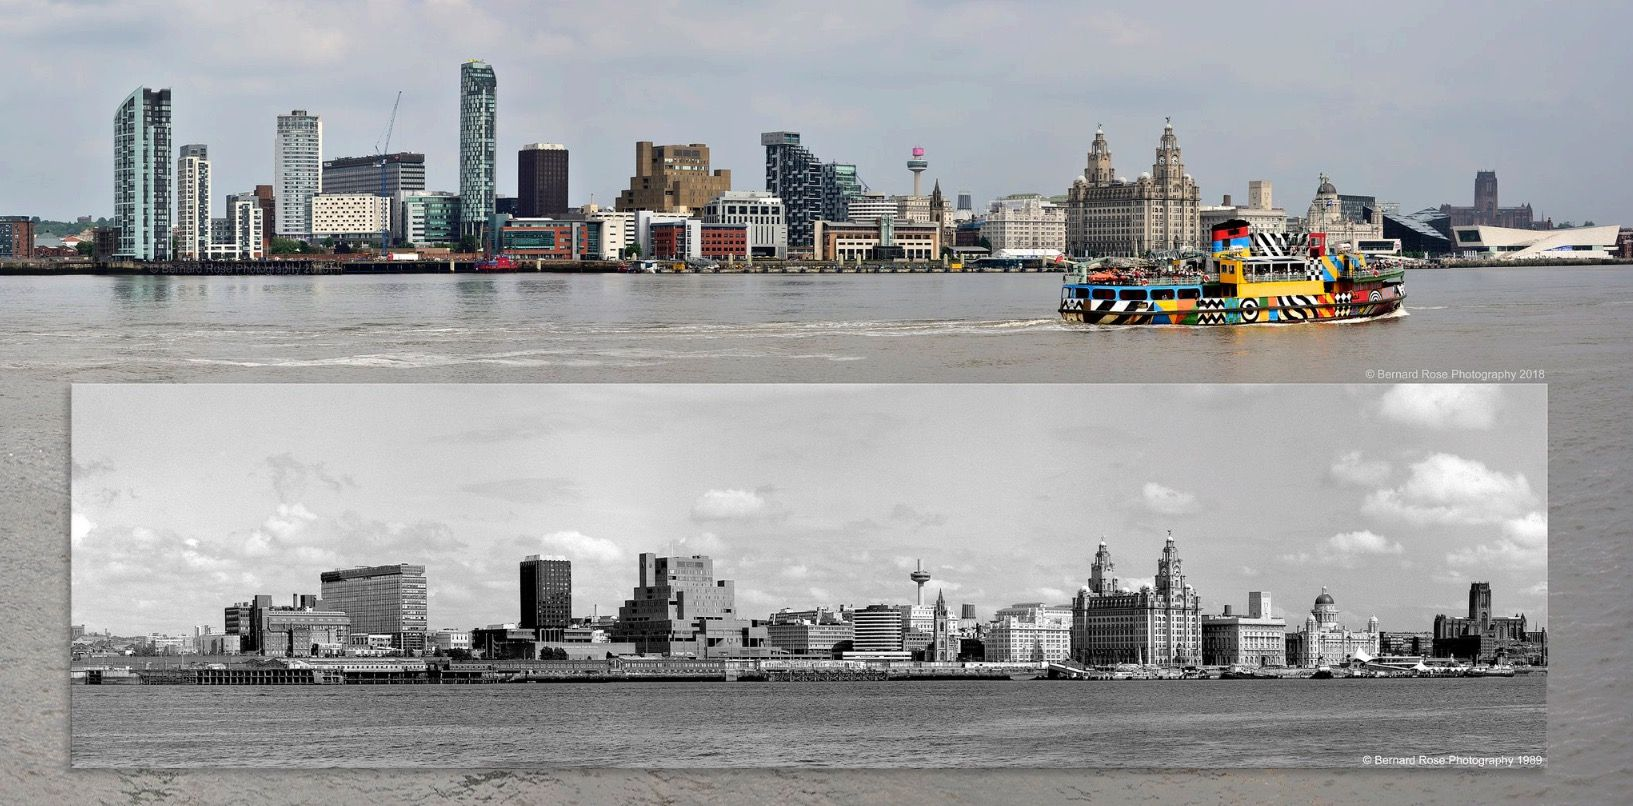 2018 & 29 years ago Liverpool from the Mersey